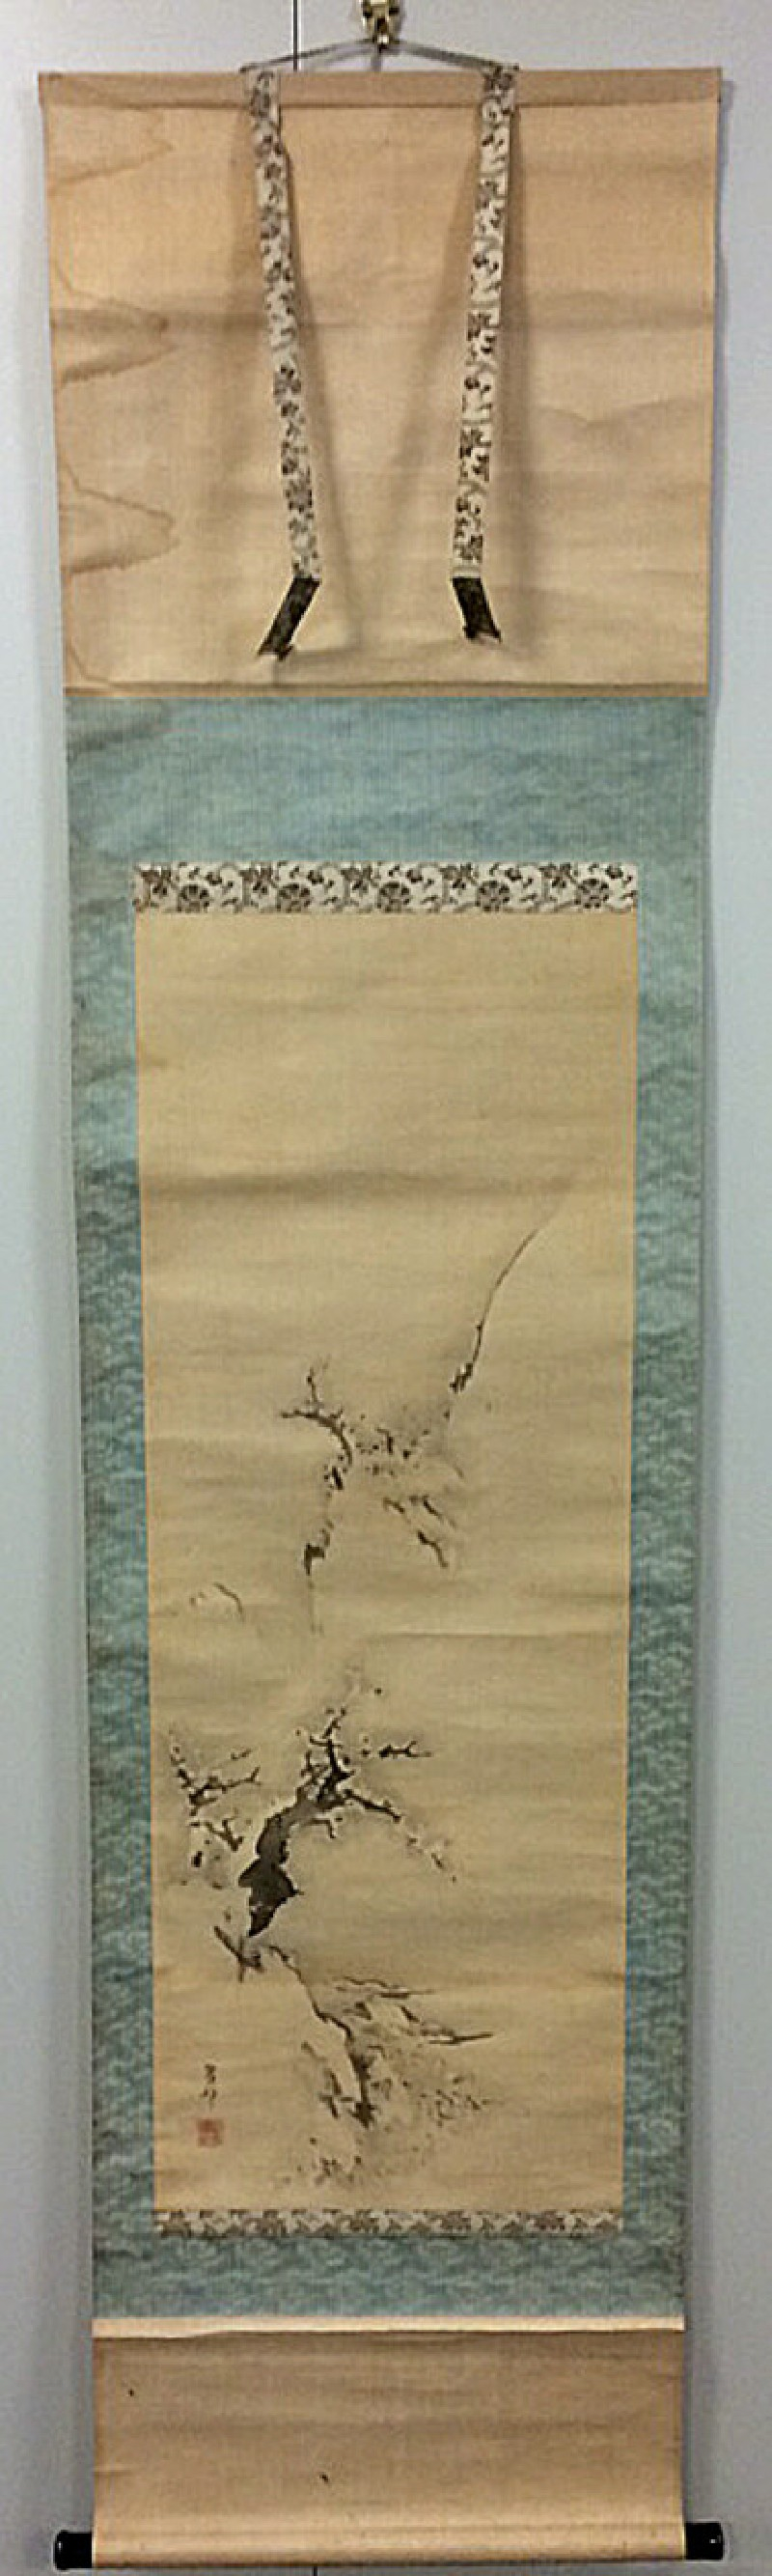 Hanging scroll of plum tree in the snow